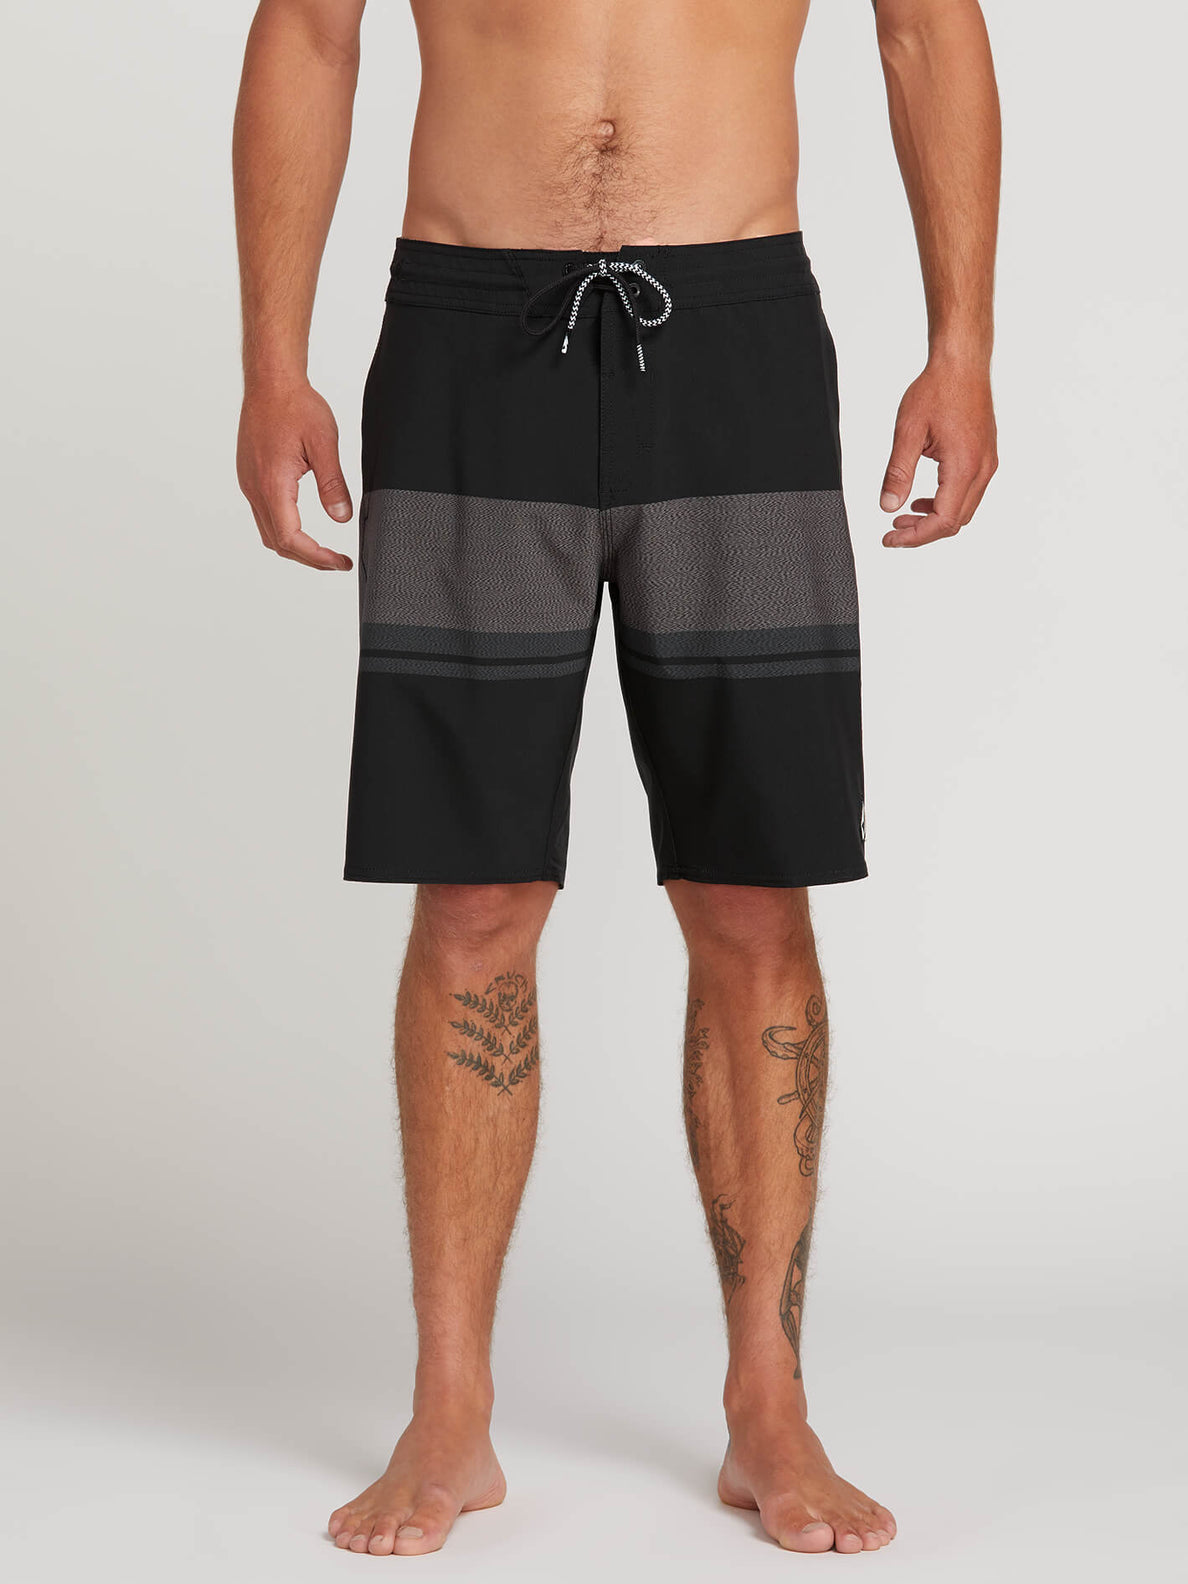 Quarta Static Stoney Boardshorts - Black